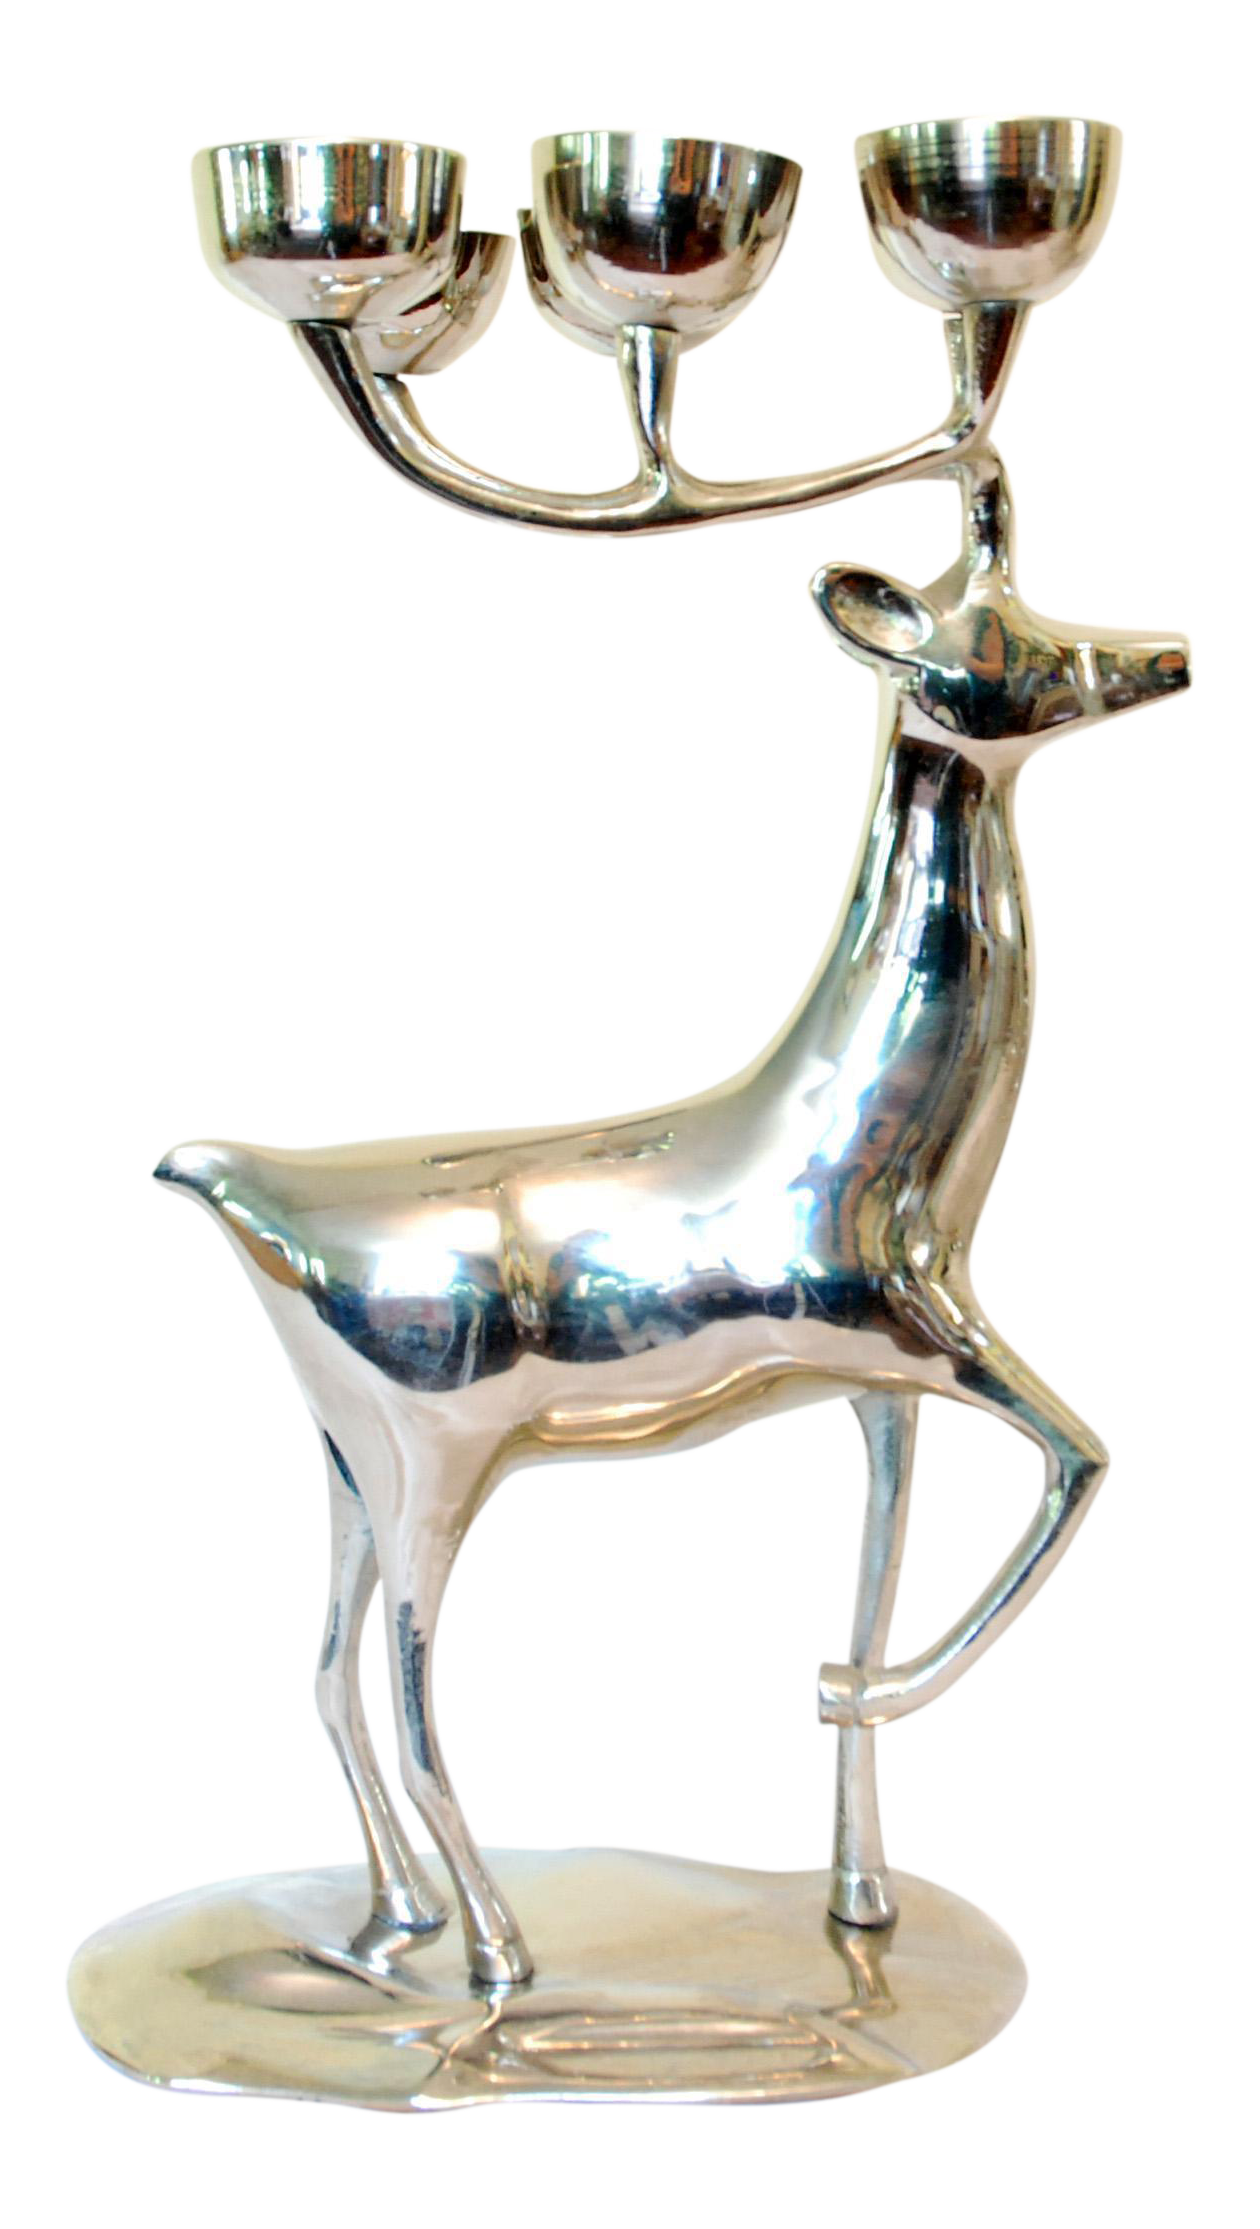 godinger silver plated reindeer candle holder chairish With kitchen cabinet trends 2018 combined with reindeer candle holders